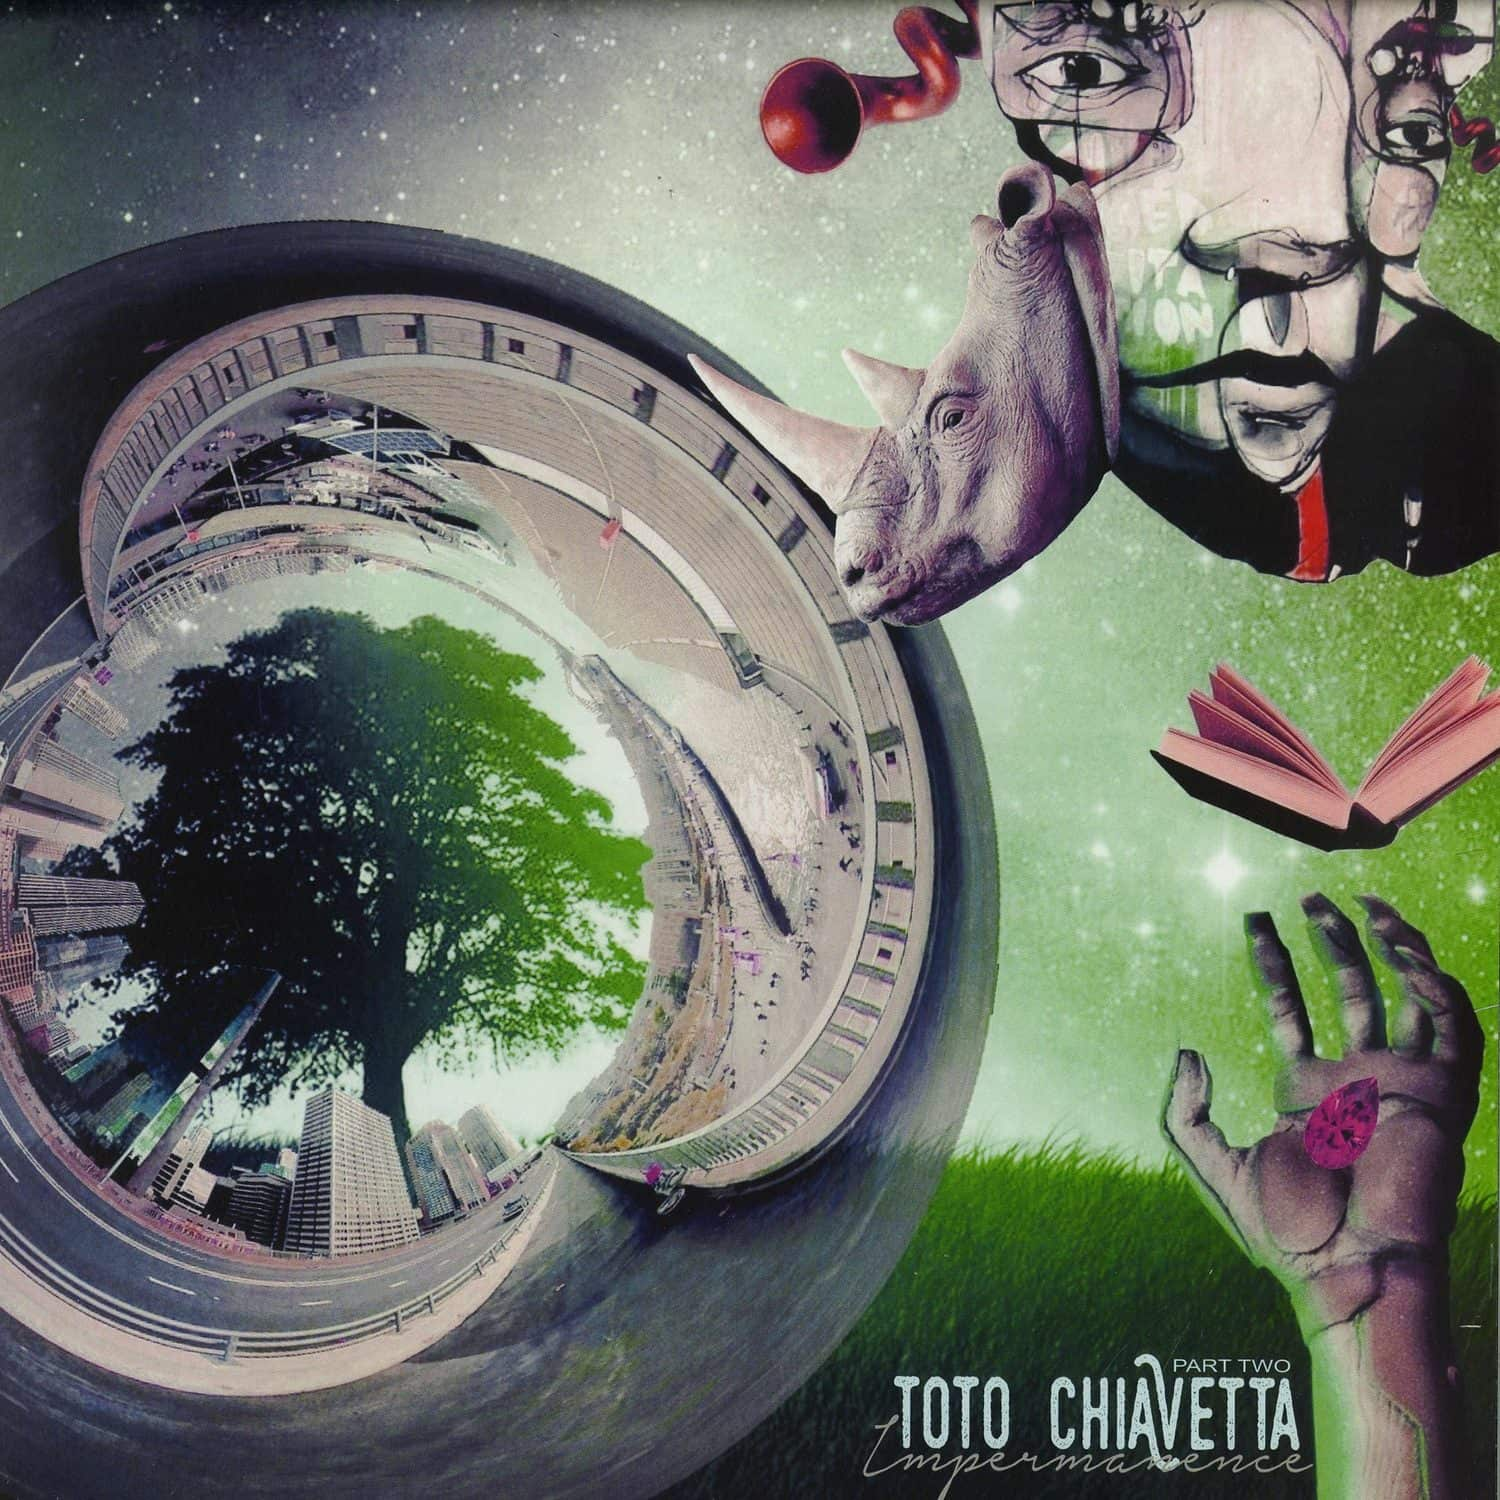 Toto Chiavetta - IMPERMANENCE PART TWO